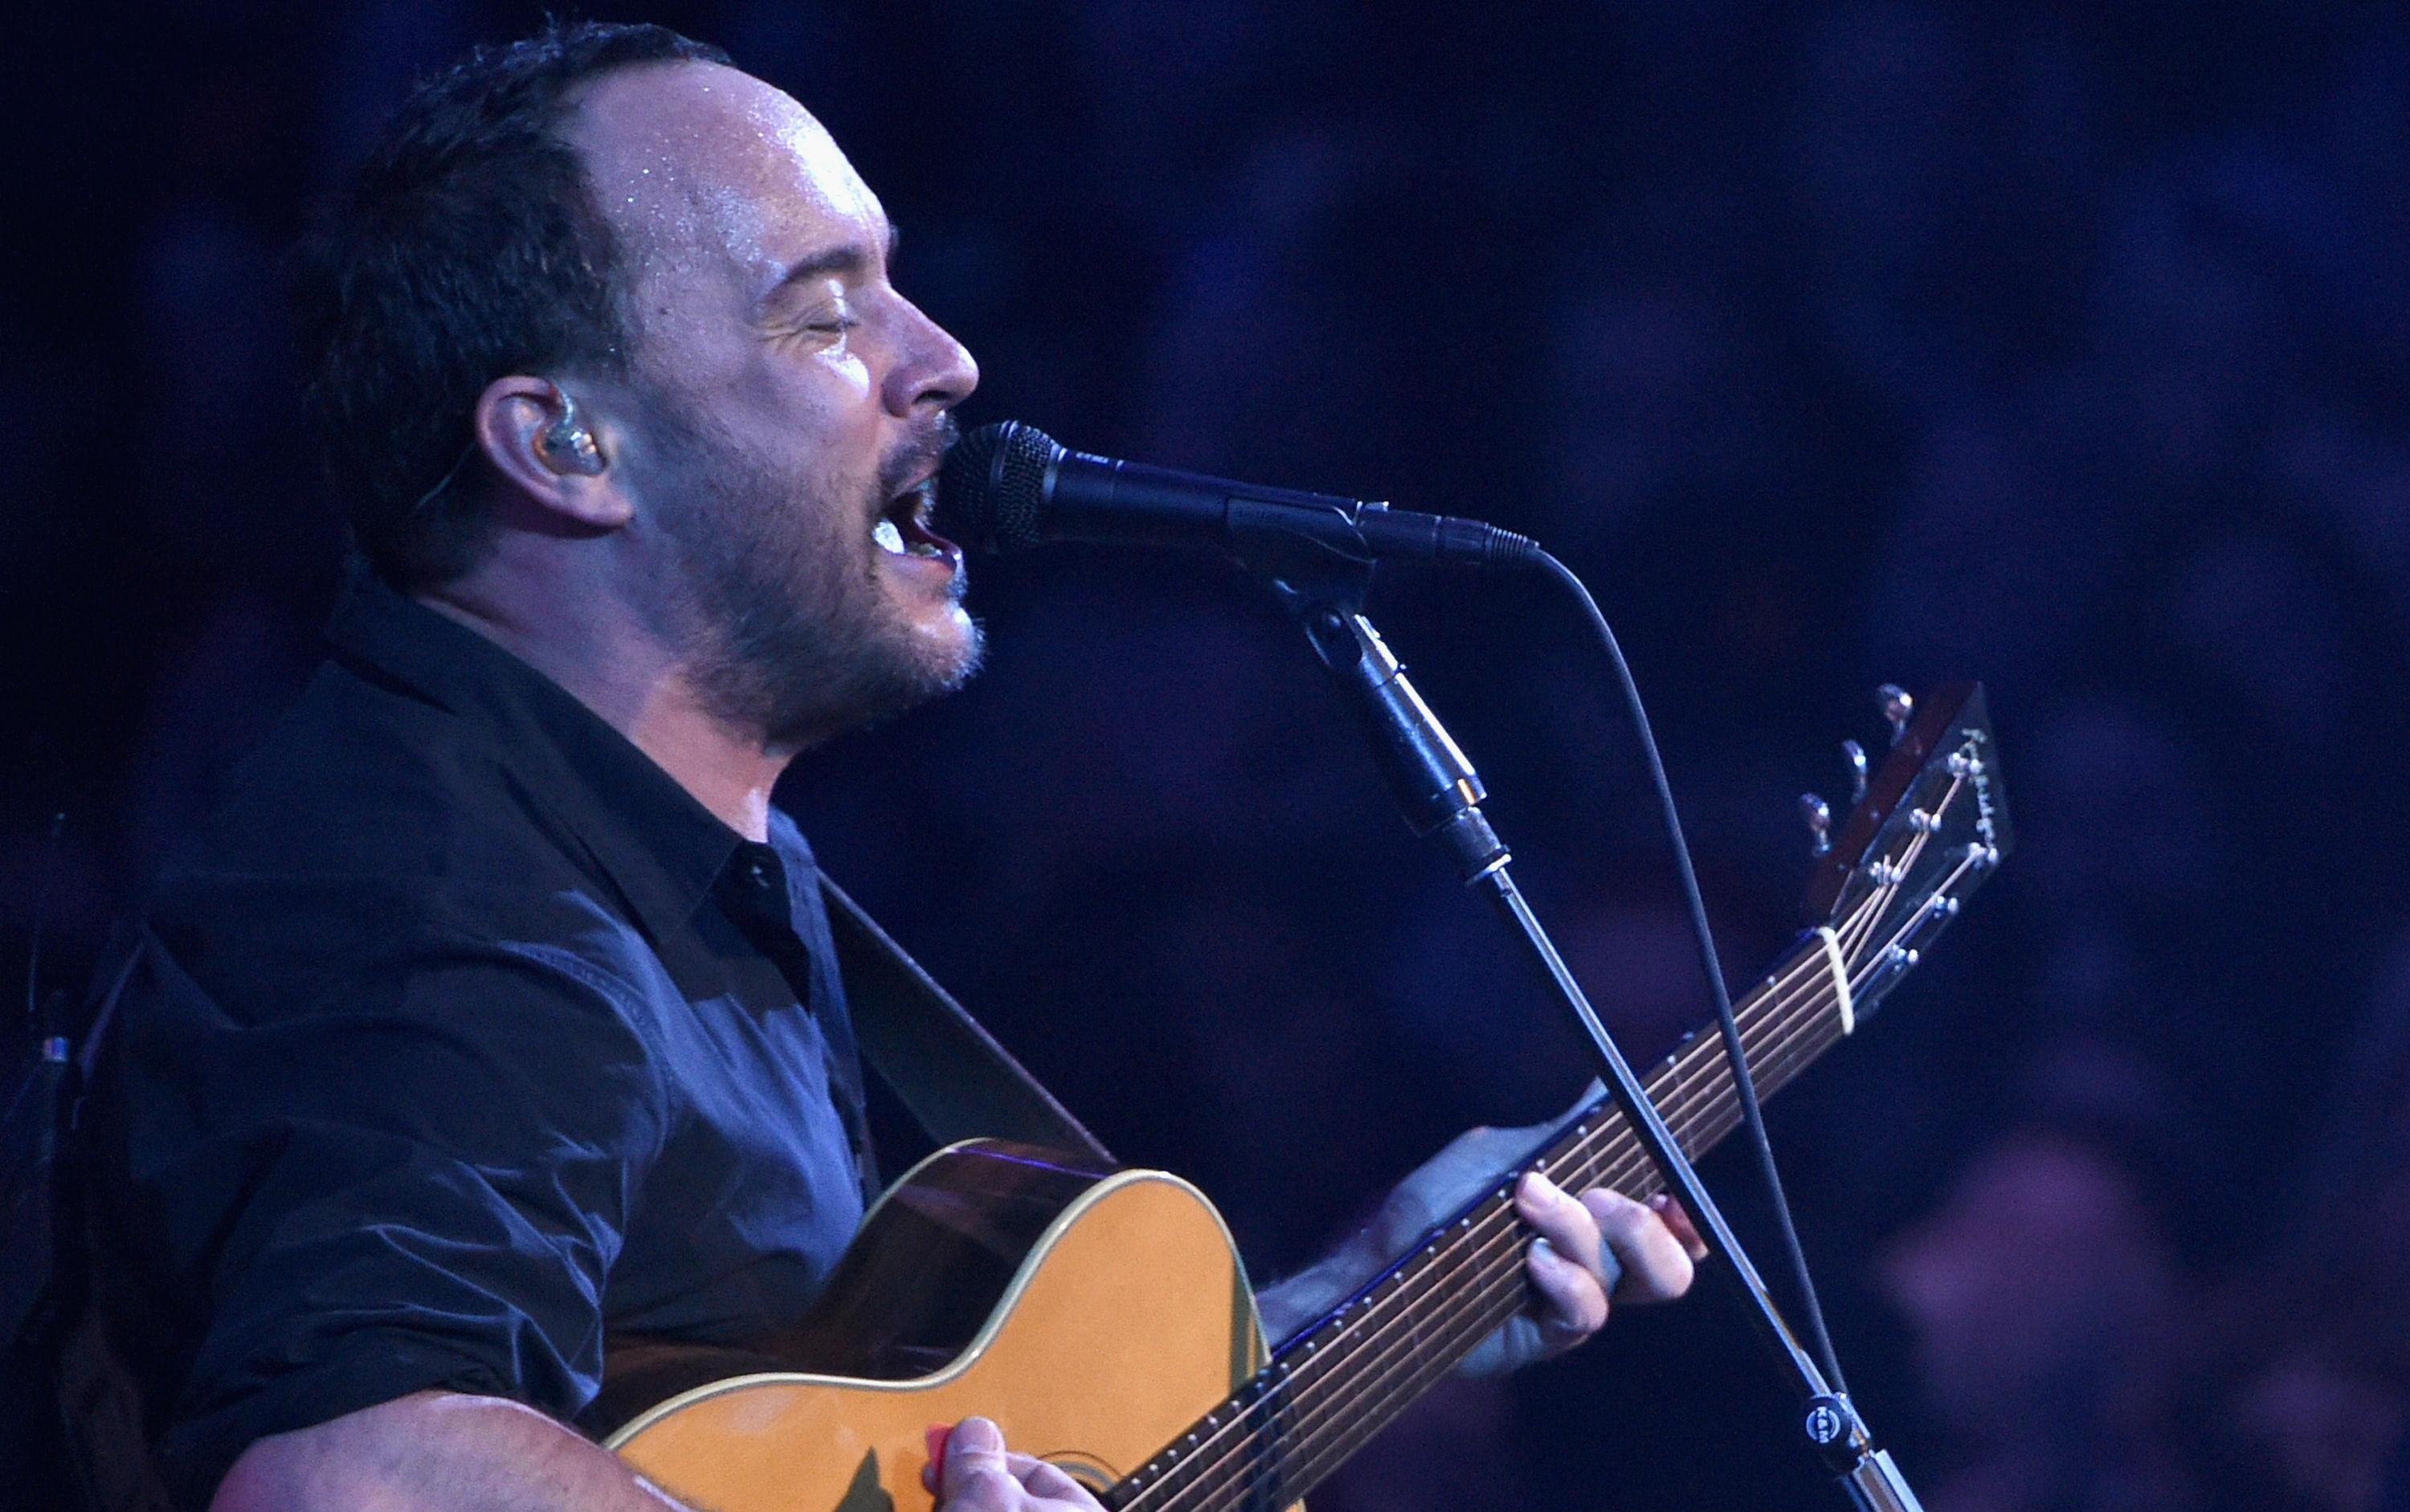 Summerfest announces Dave Matthews Band to perform July 1st